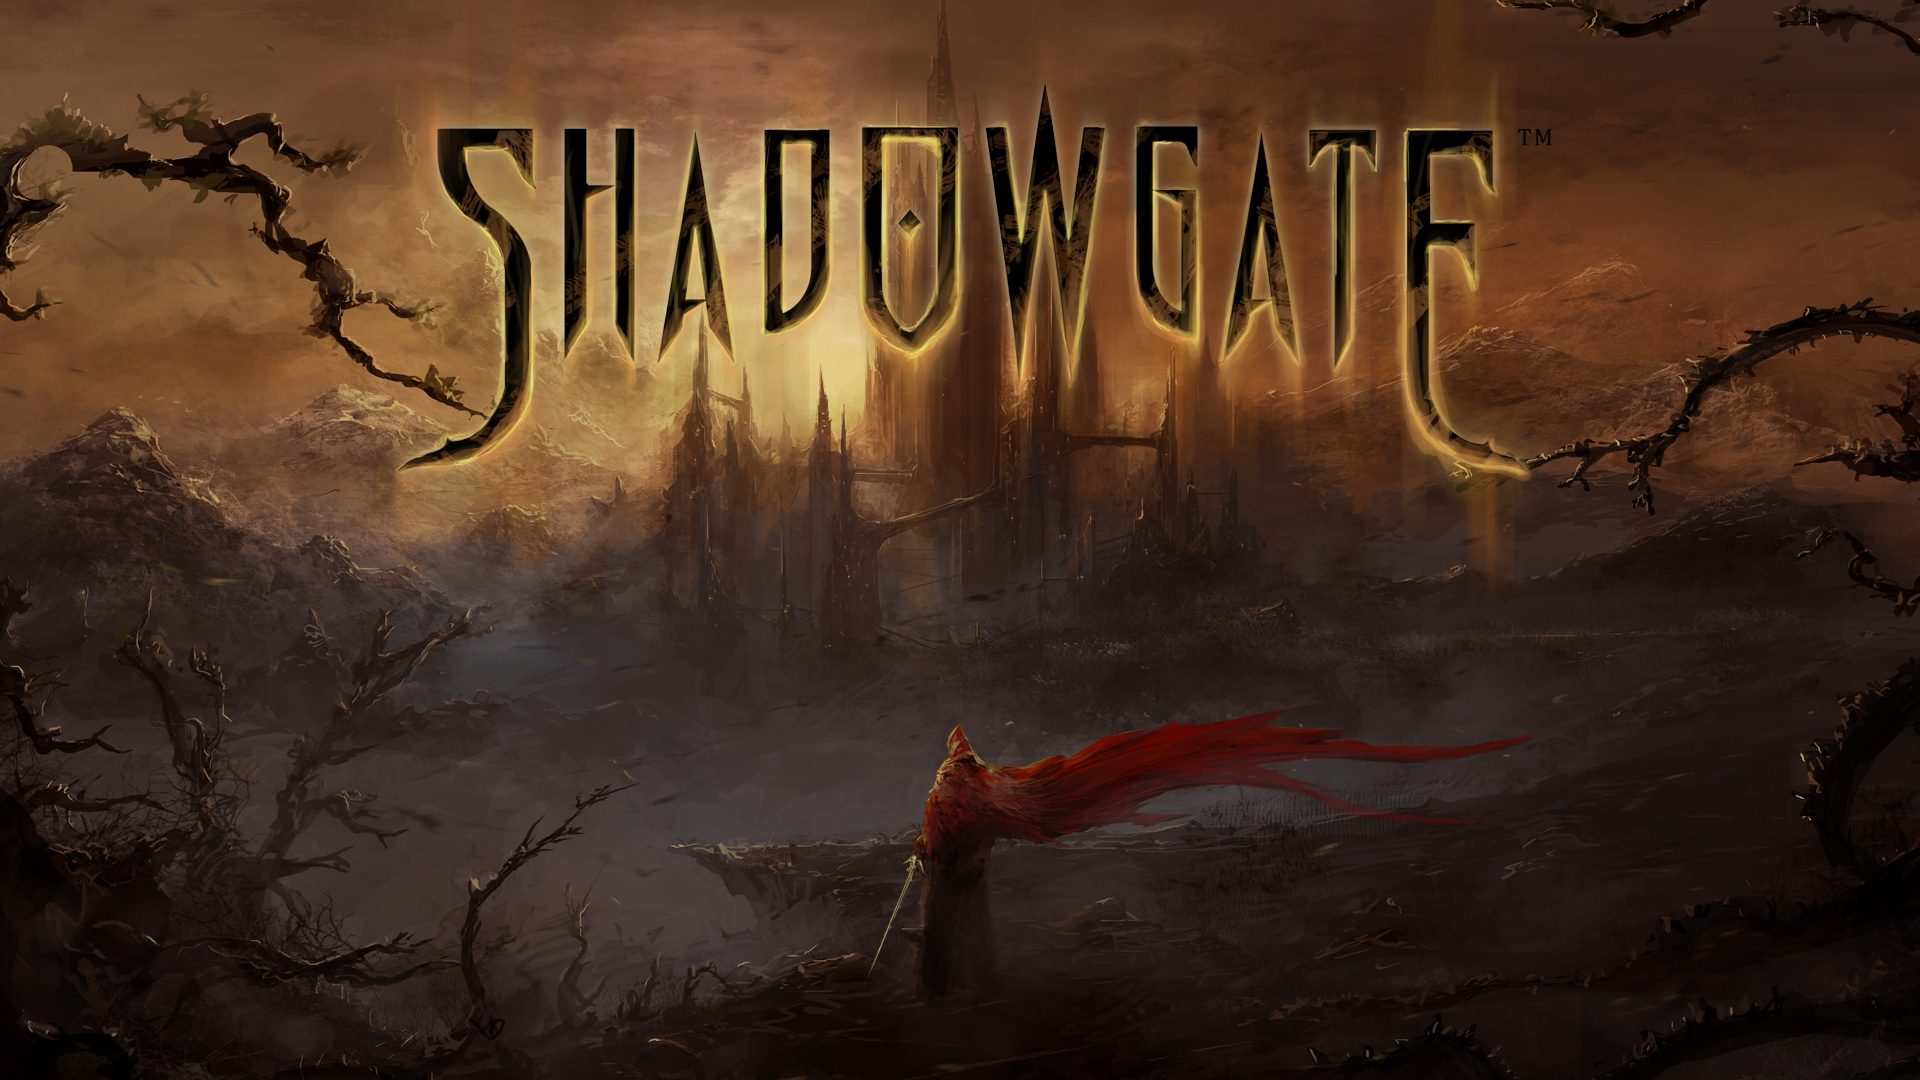 2014 Remastered Shadowgate Coming to Console